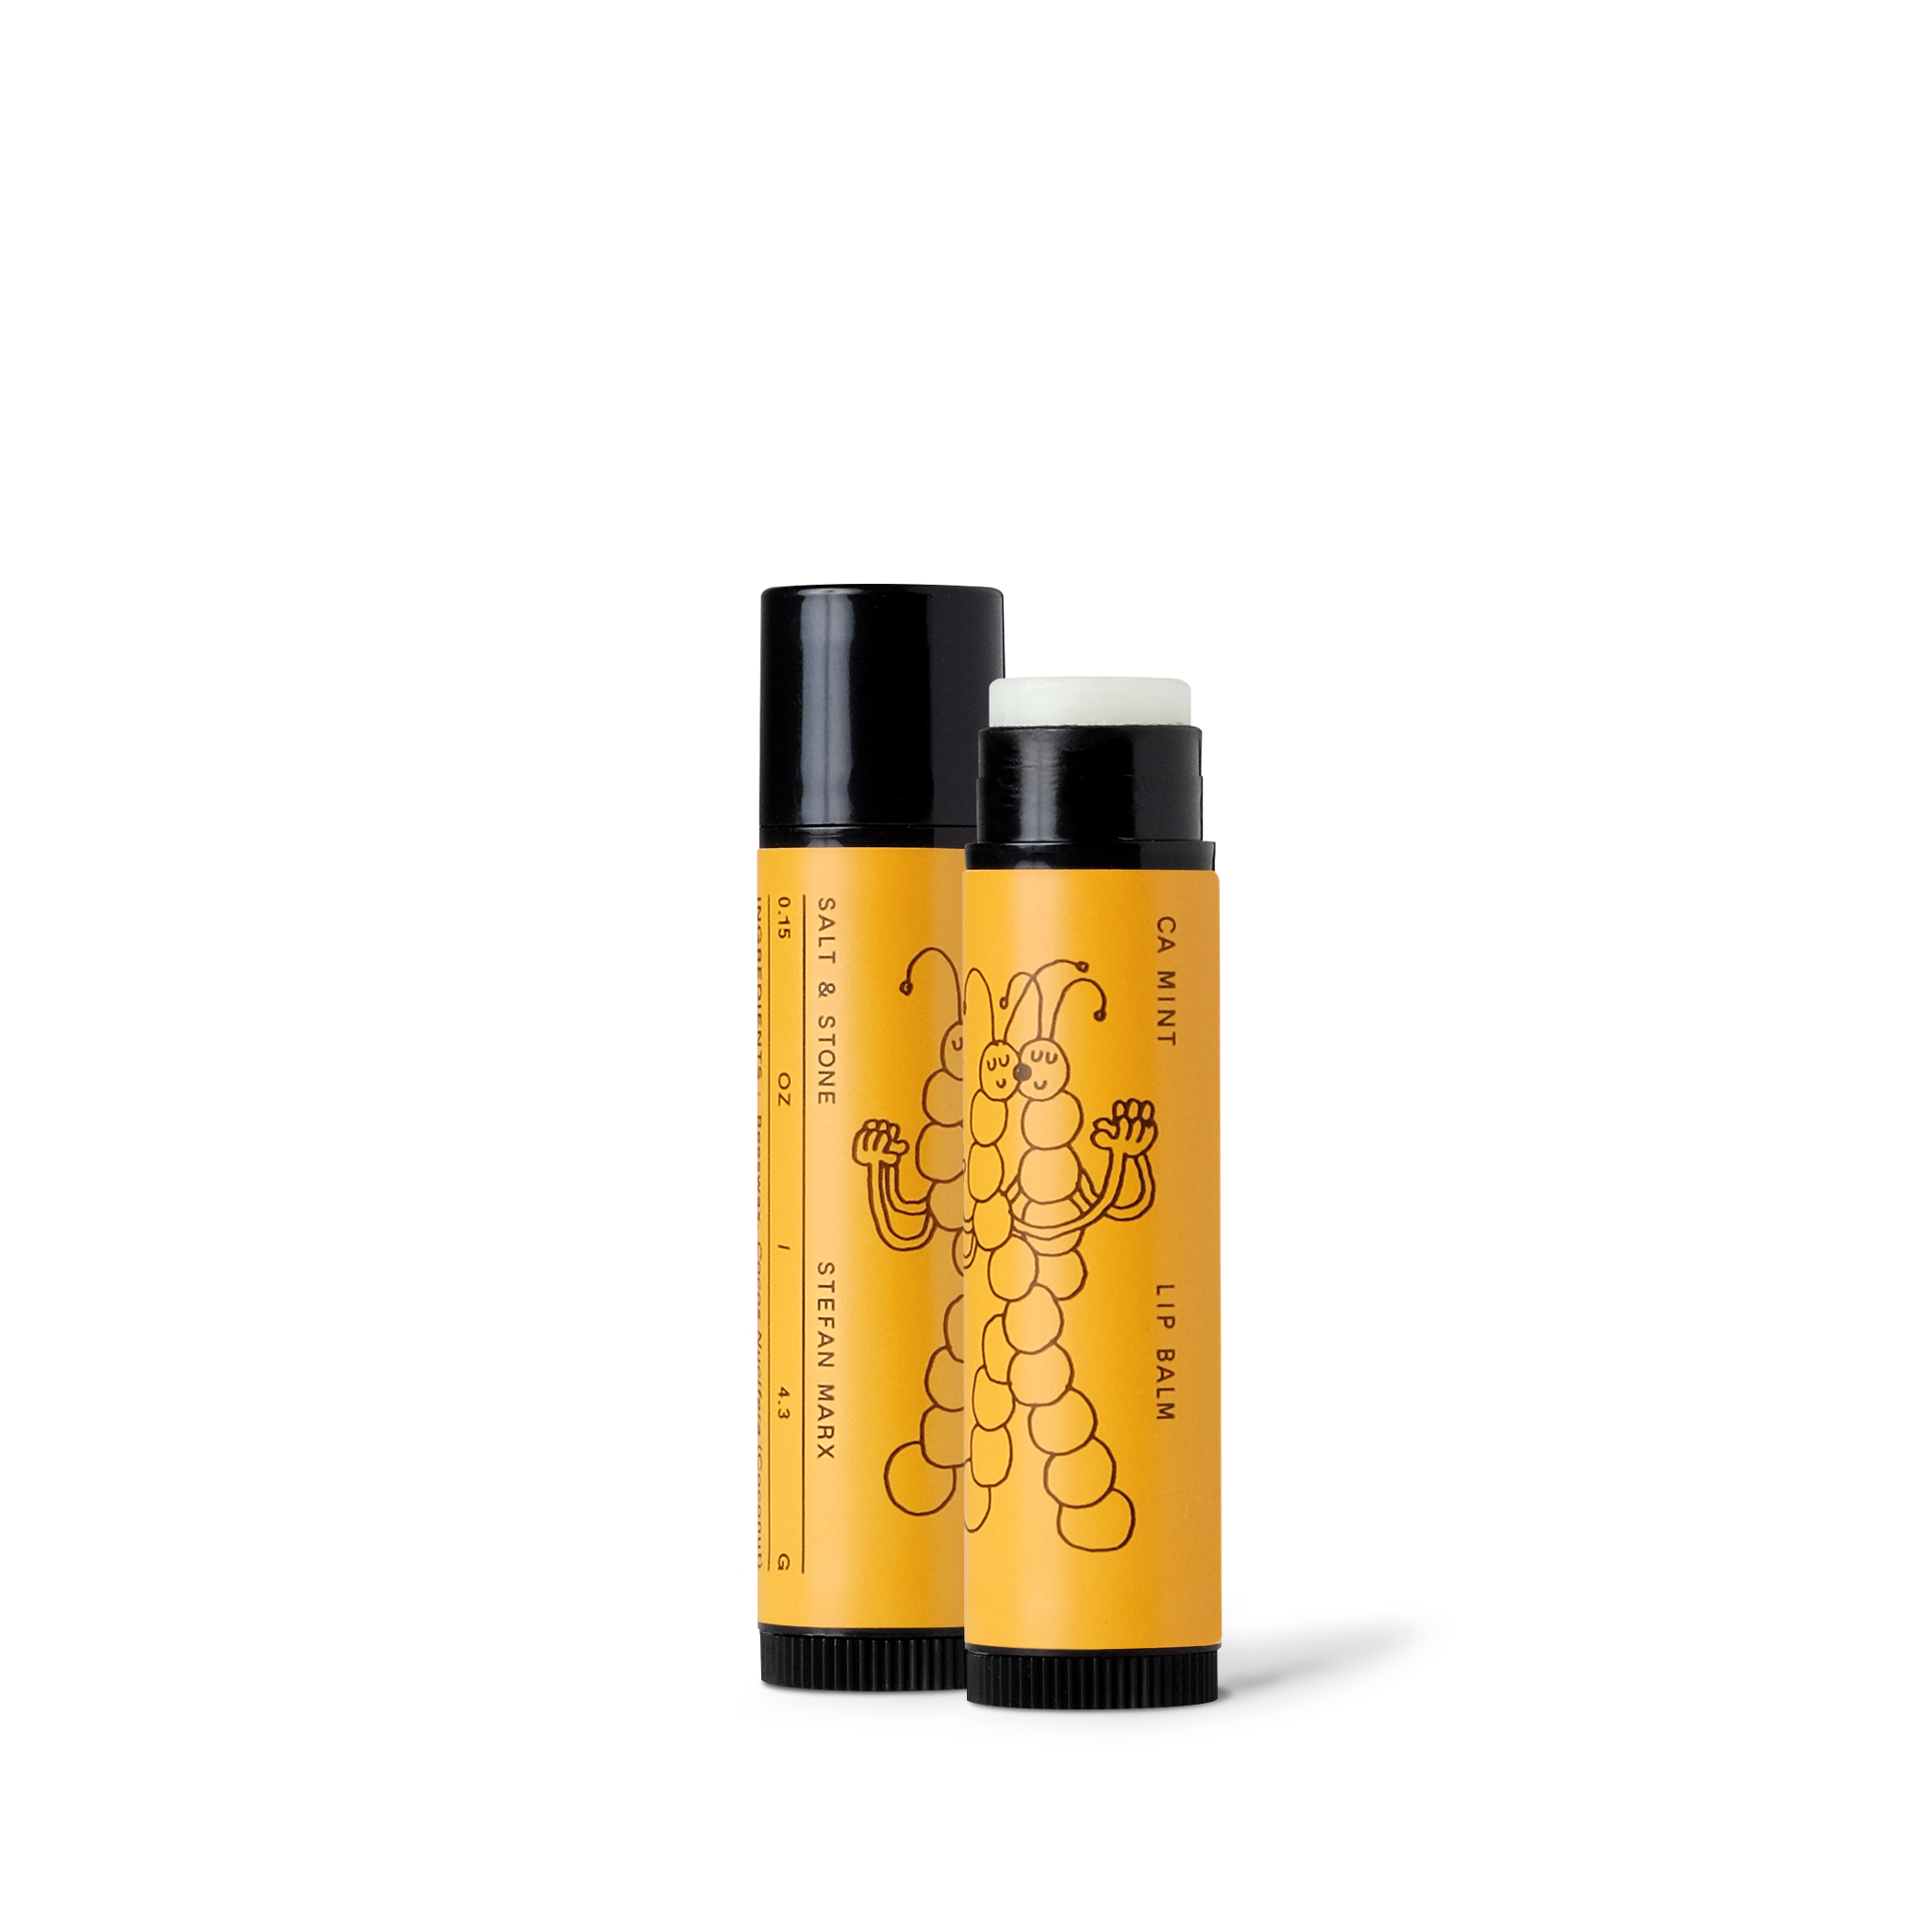 Stefan Marx Artist Collaboration Lip Balm